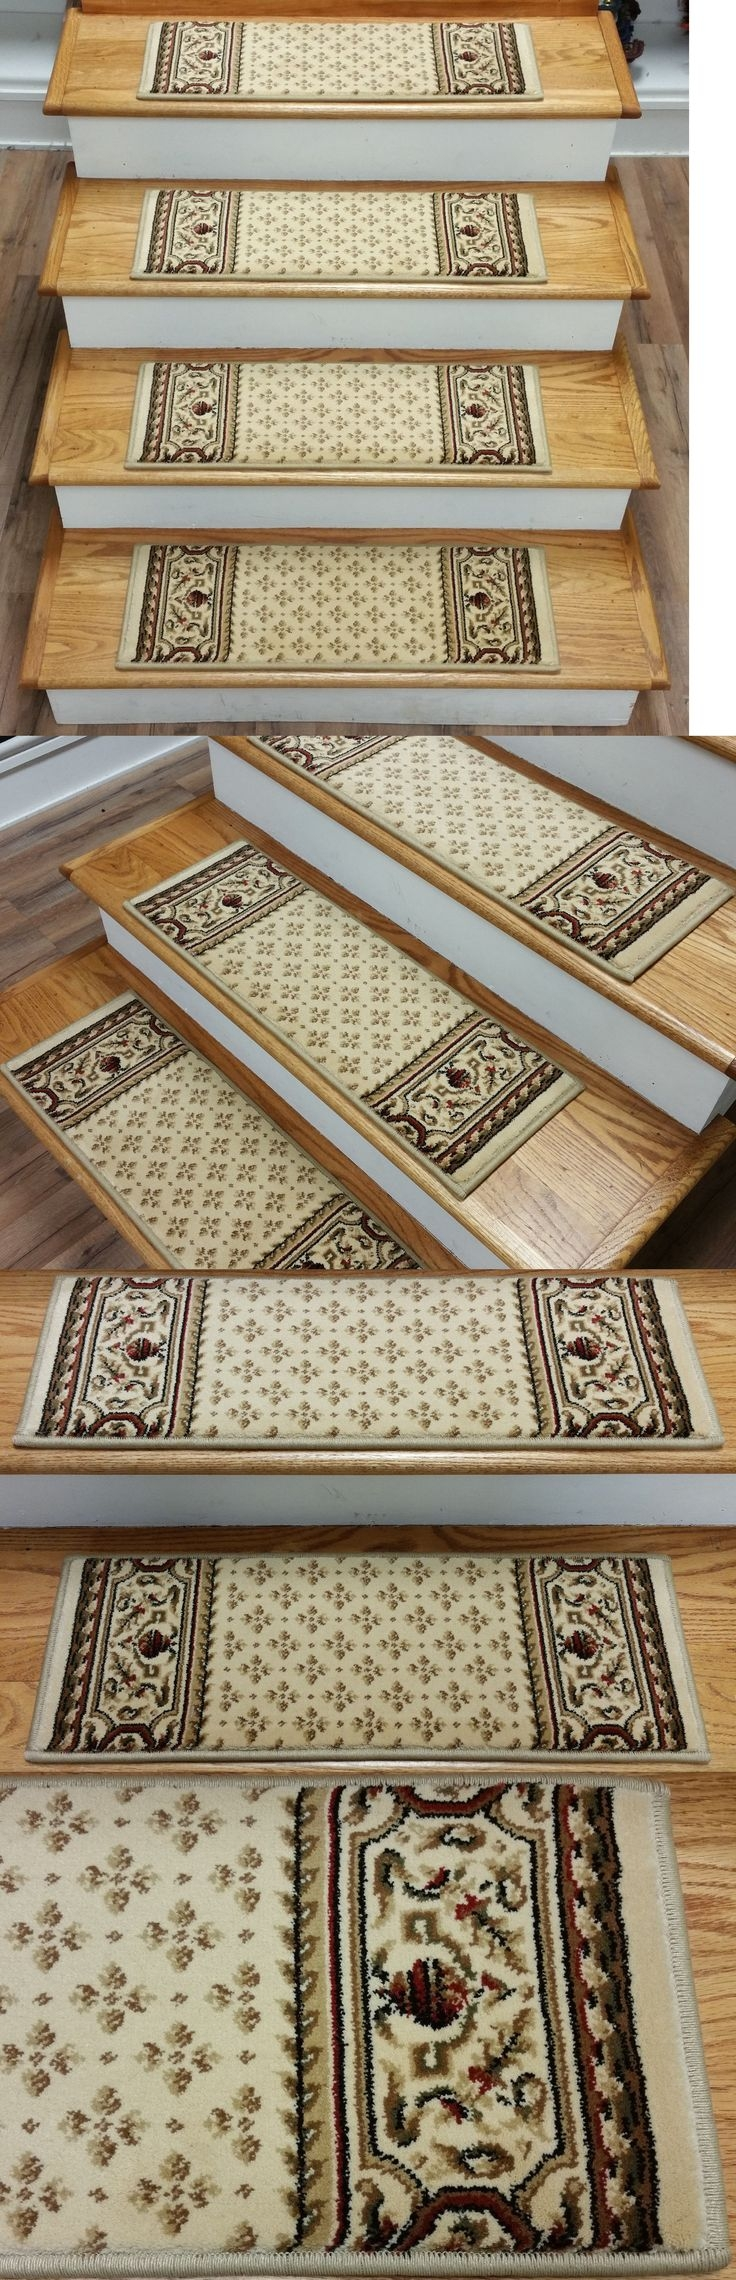 Top 25 Best Carpet Stair Treads Ideas On Pinterest Wood Stair Intended For Carpet Stair Treads And Rugs 9× (View 3 of 20)